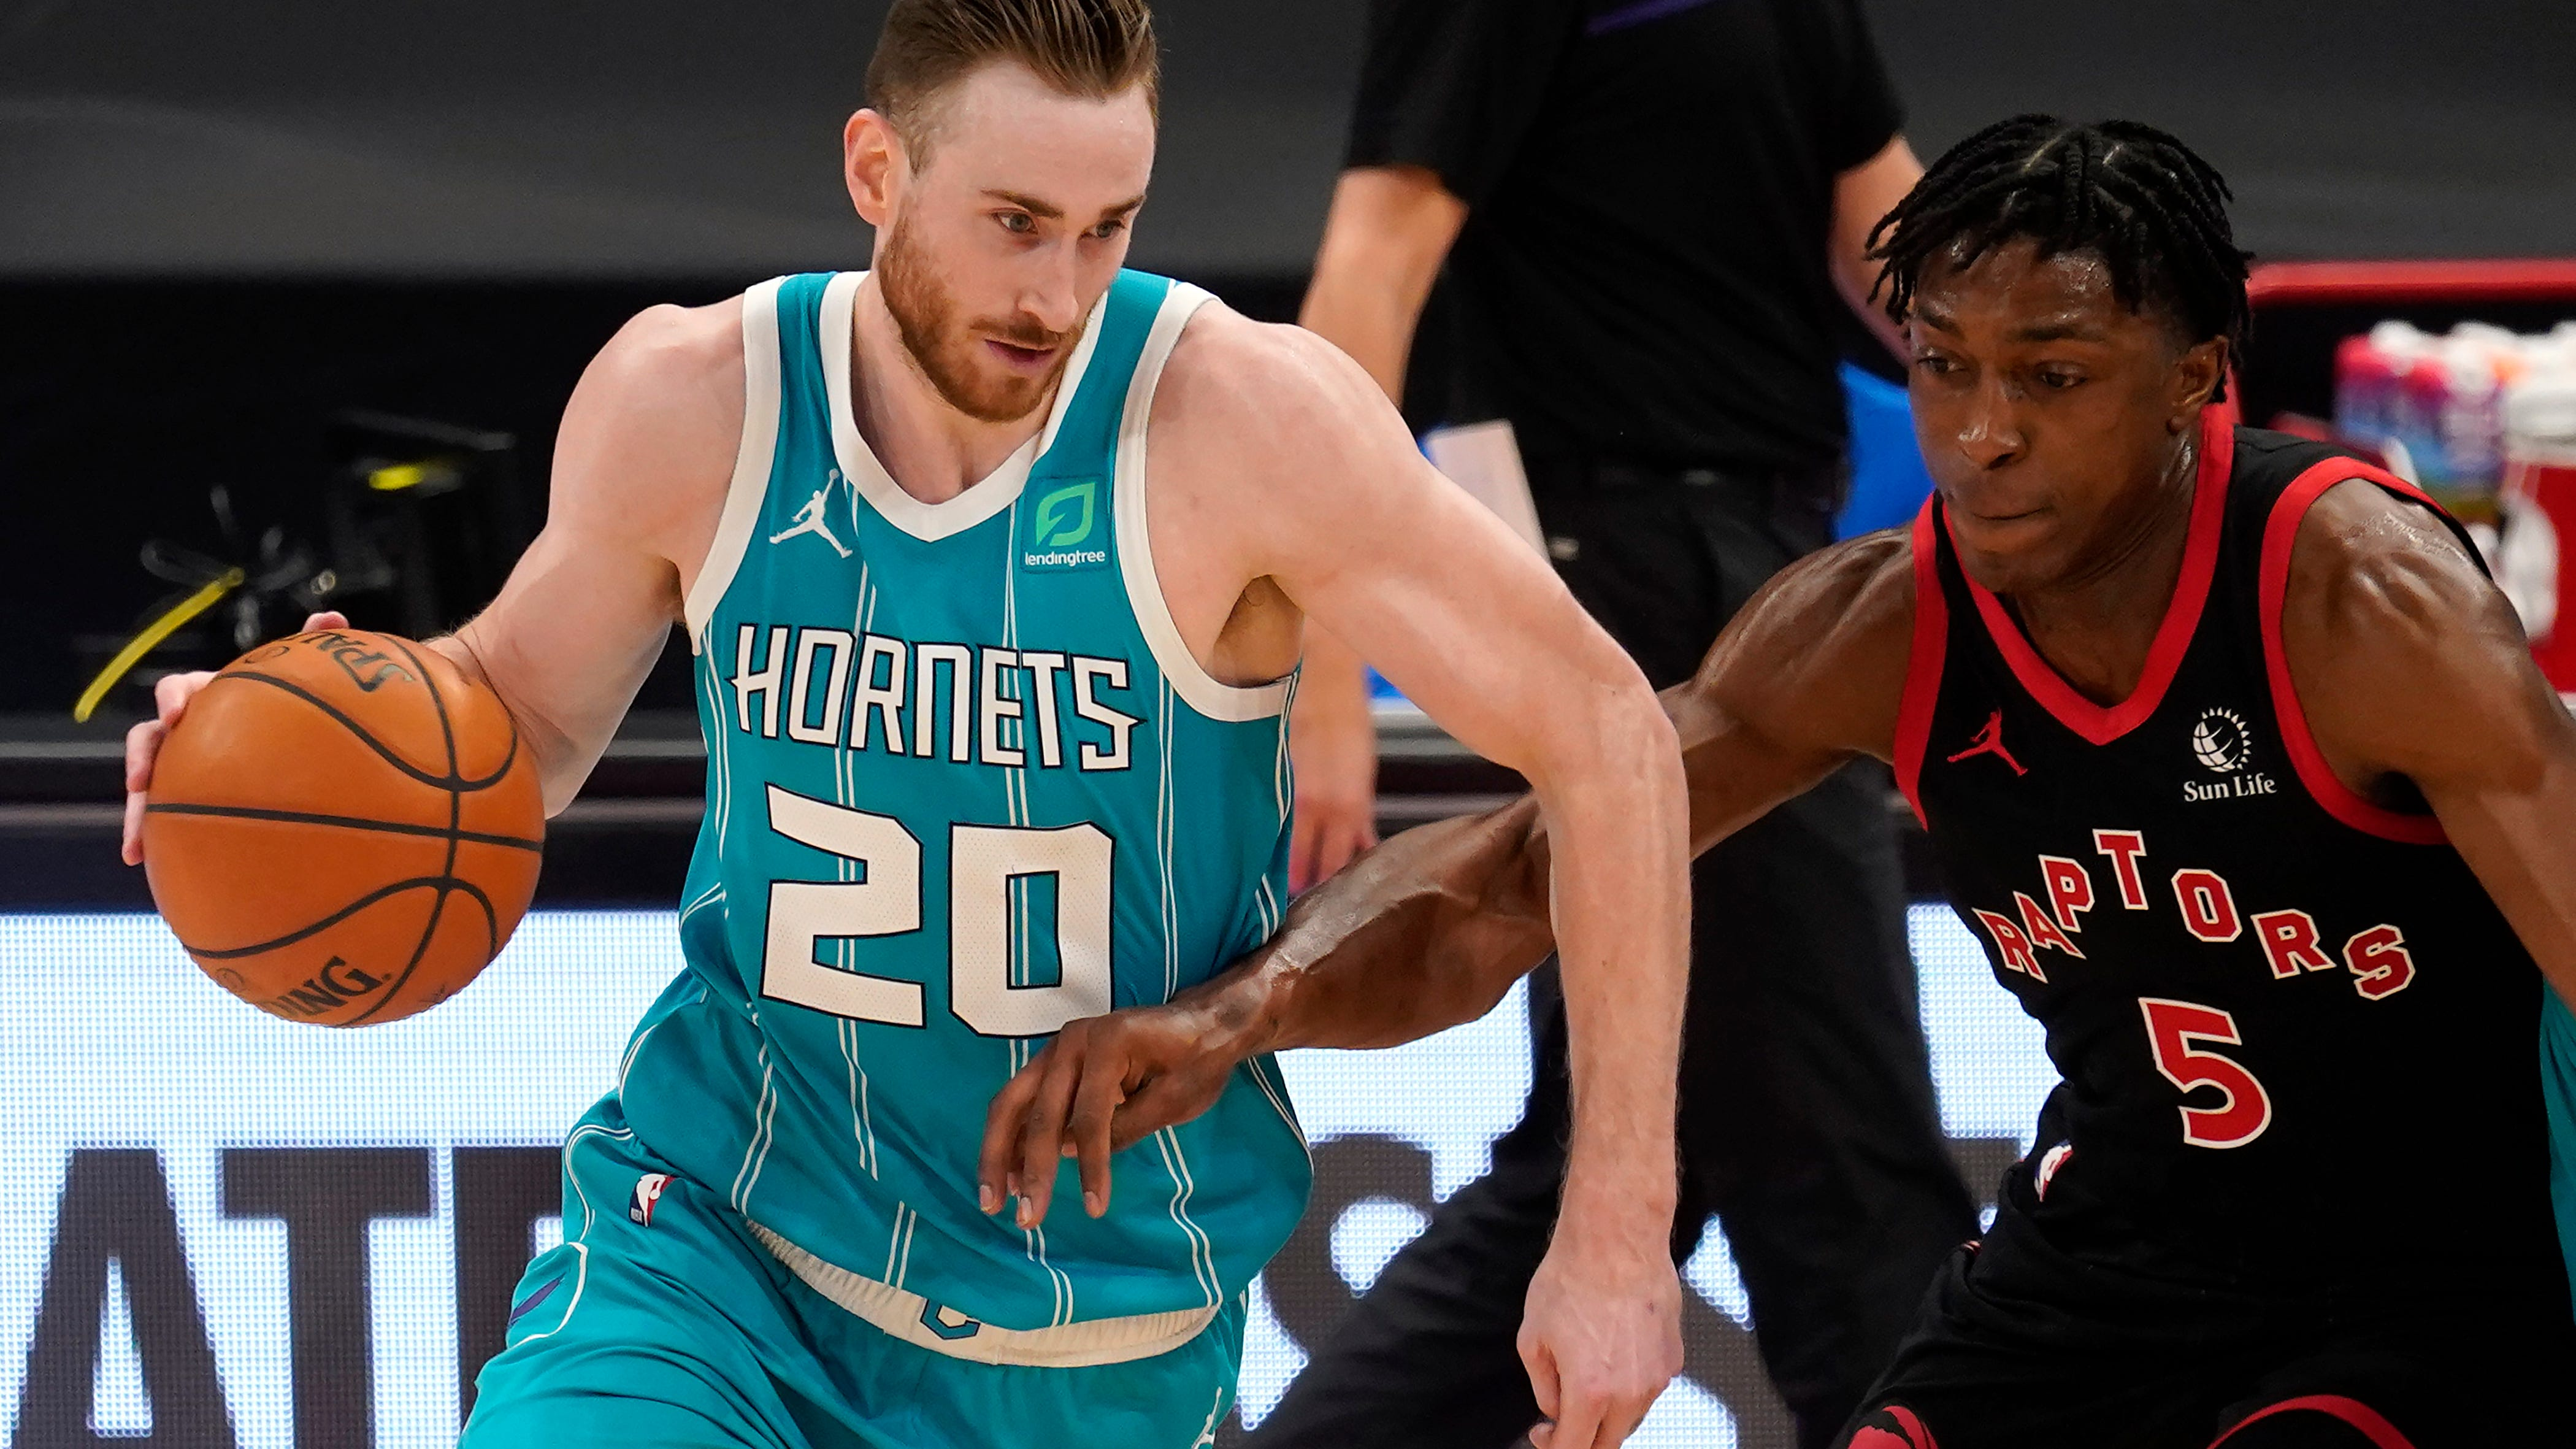 The Hornets were interested in signing Gordon Hayward (20) during the free agency period because of his ability to make plays off the dribble and in transition.